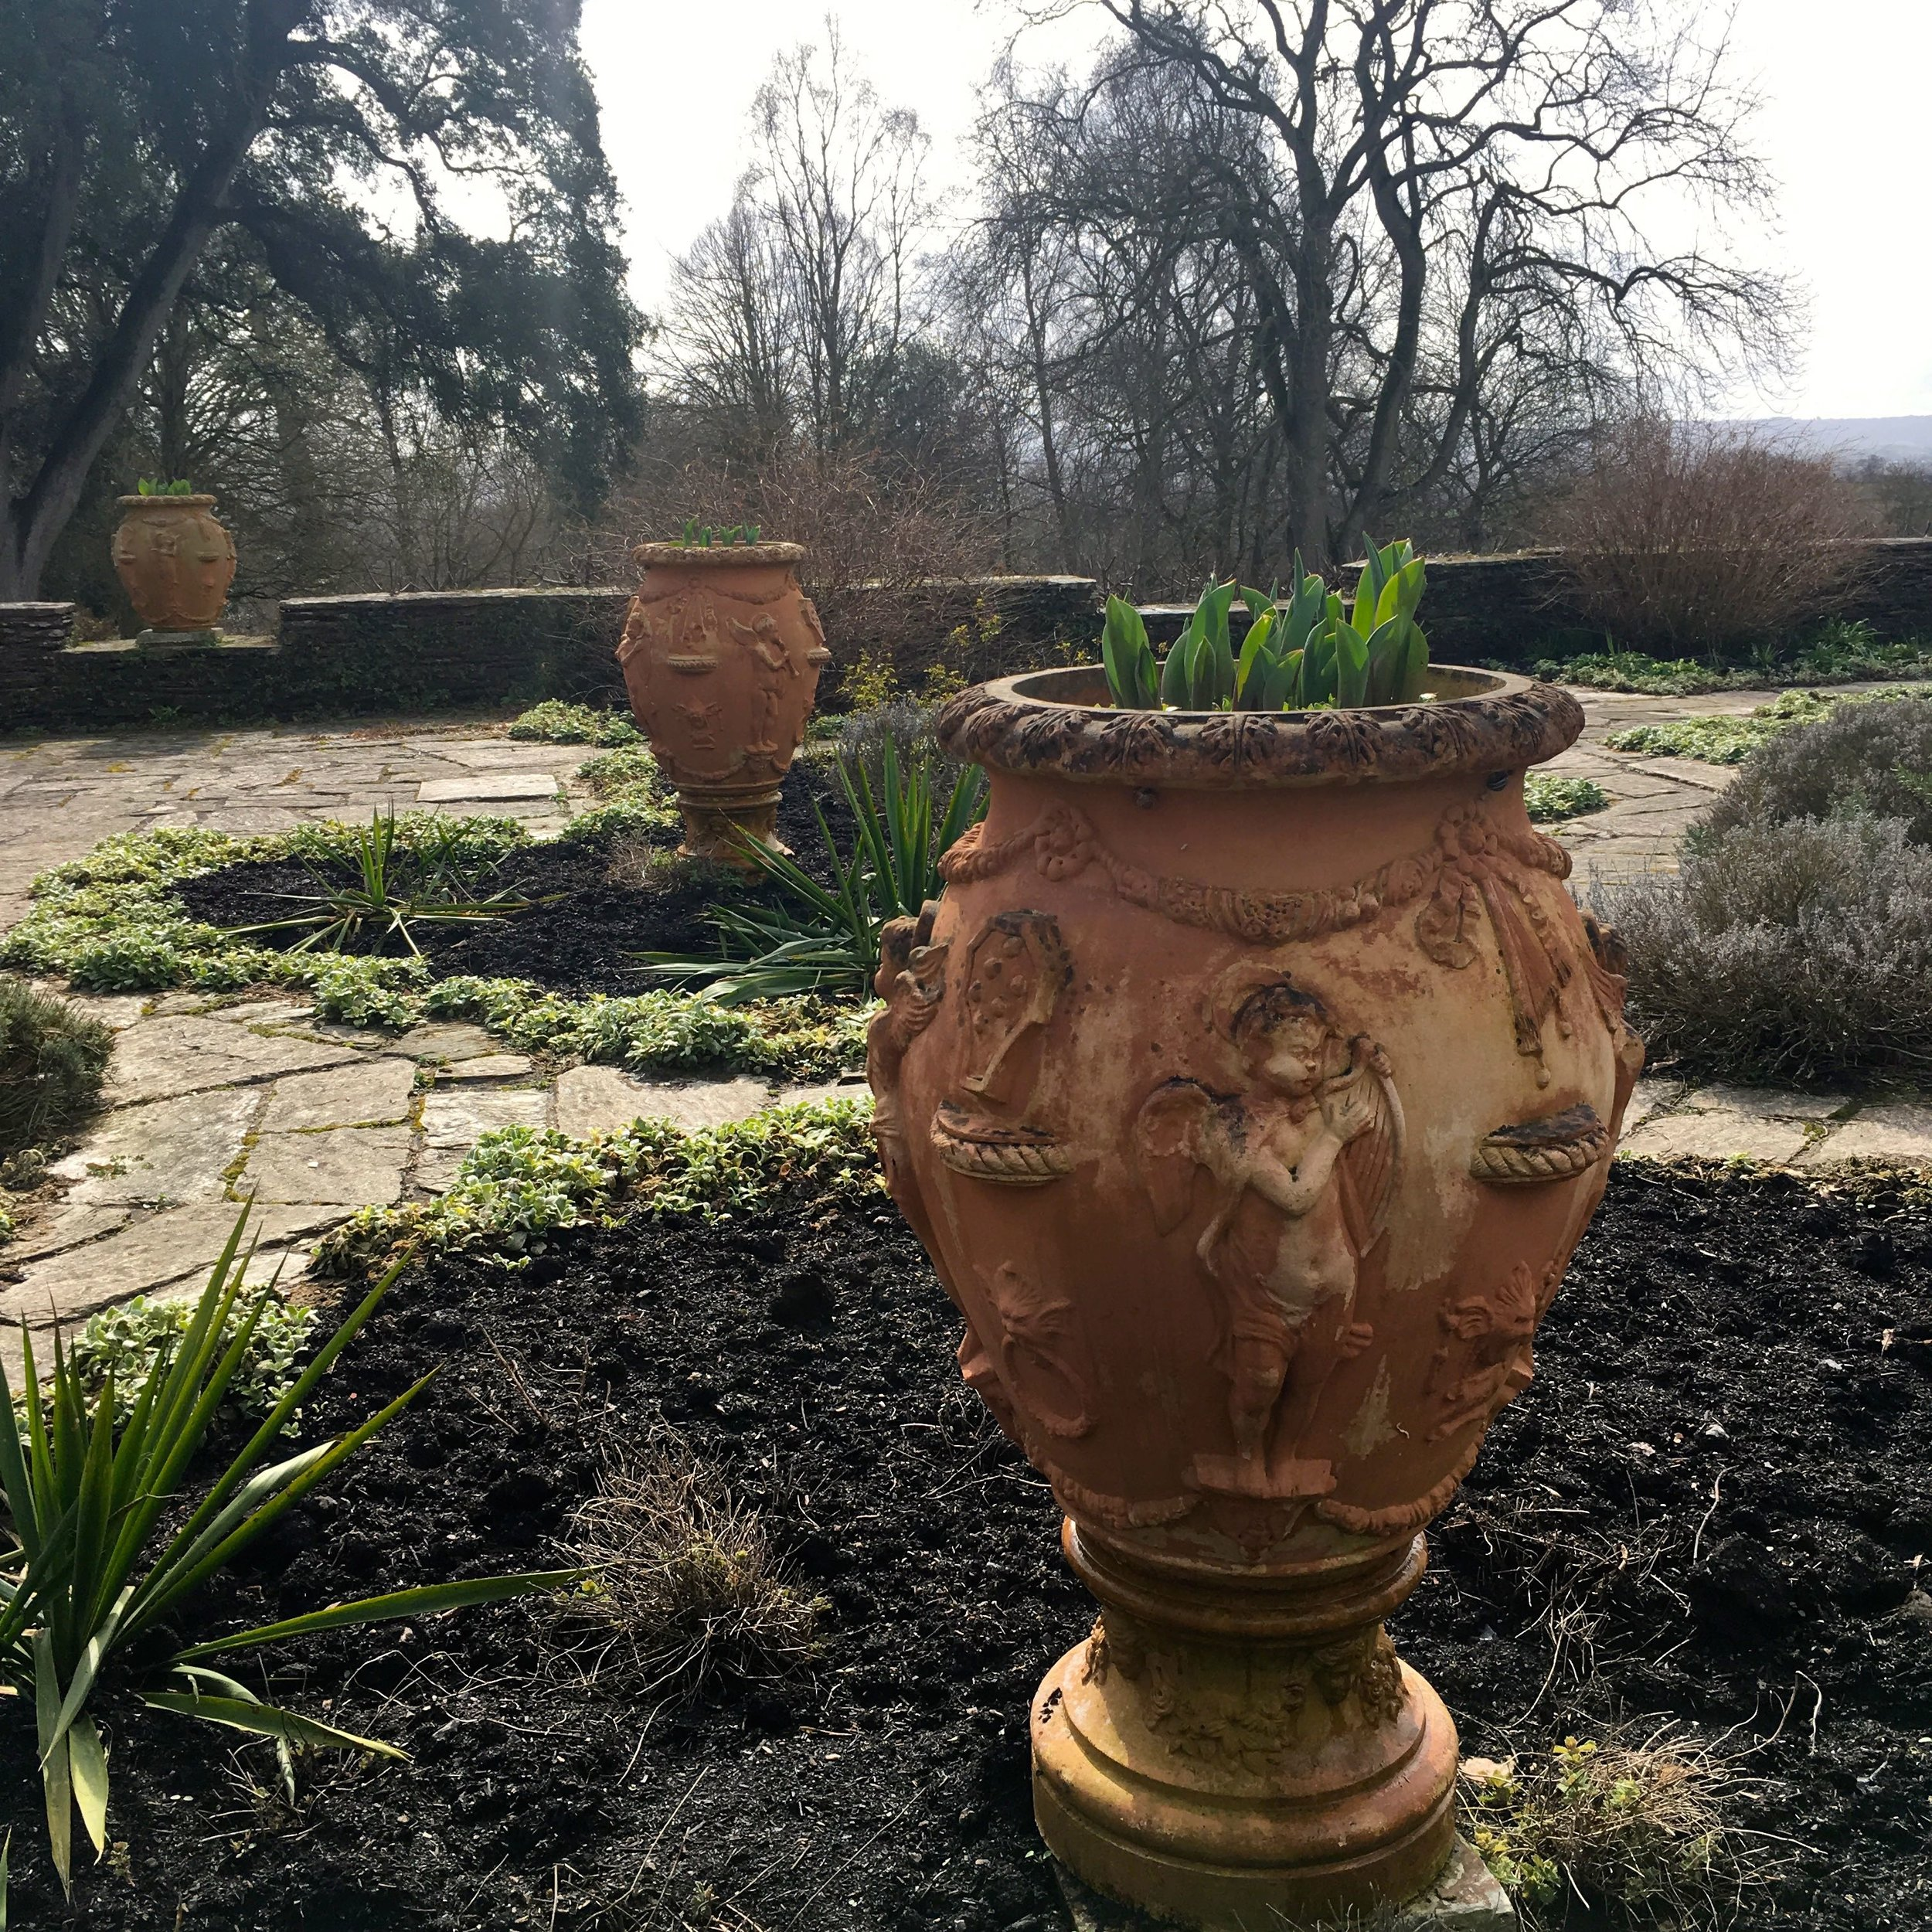 large terracotta pots in the Dutch garden